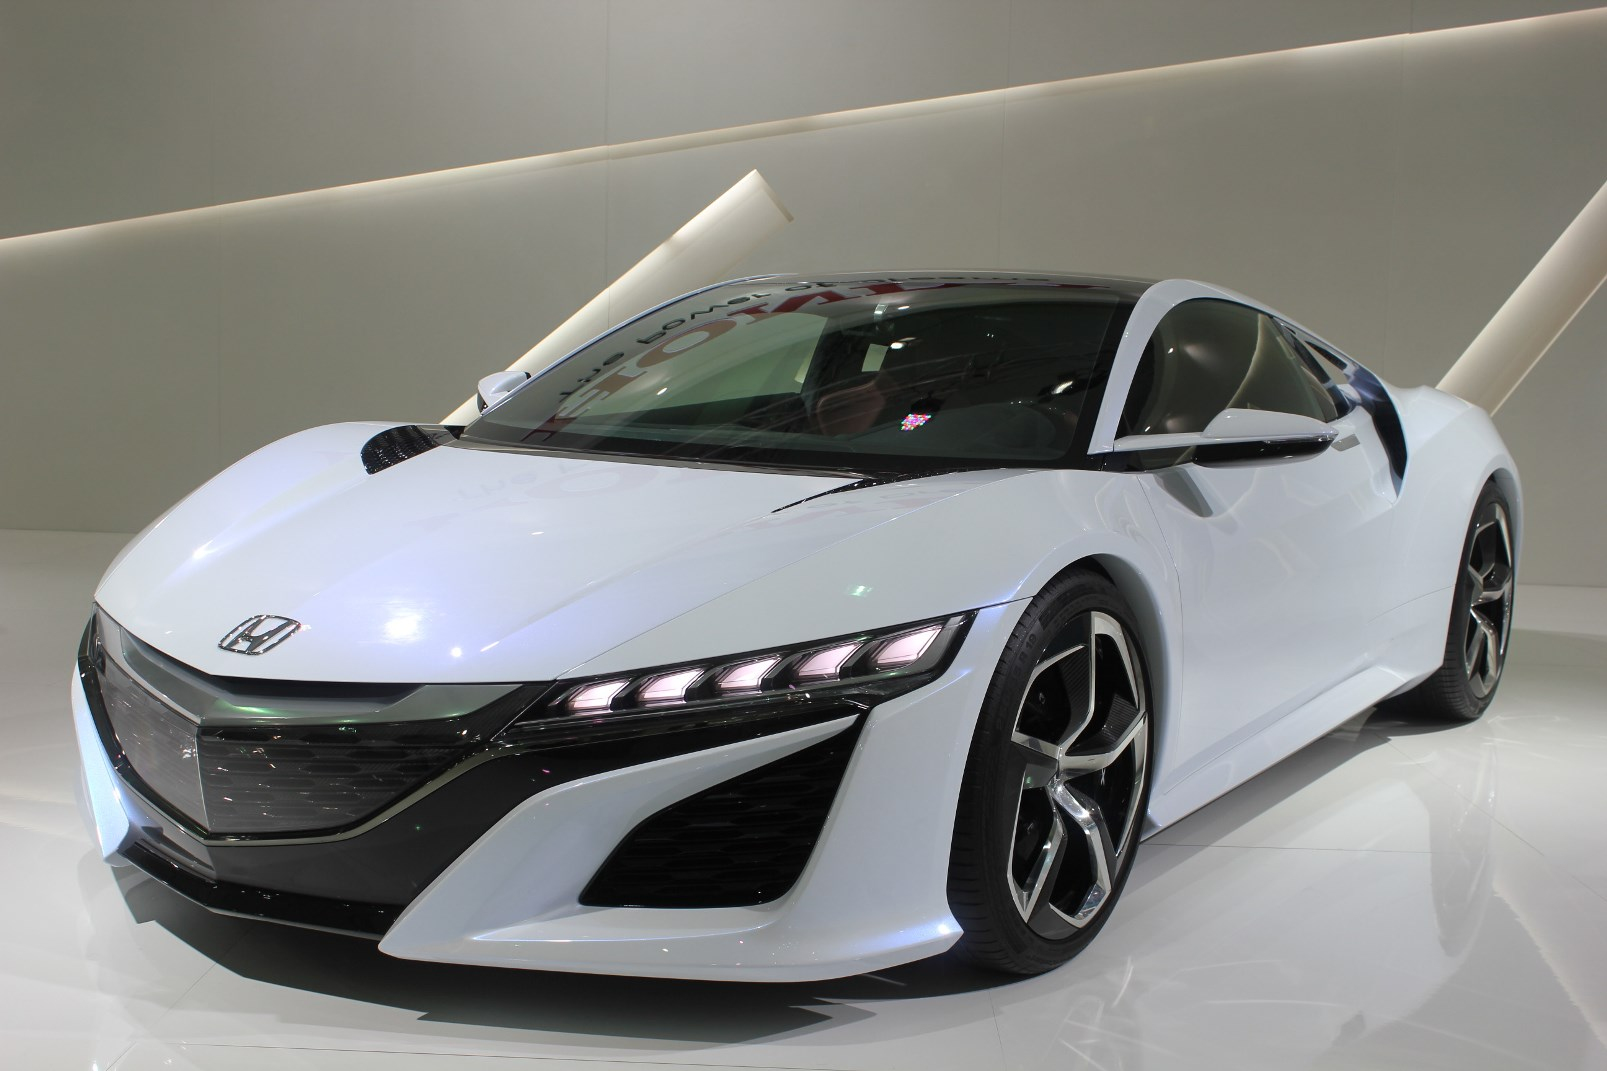 Honda Car HD Wallpaper